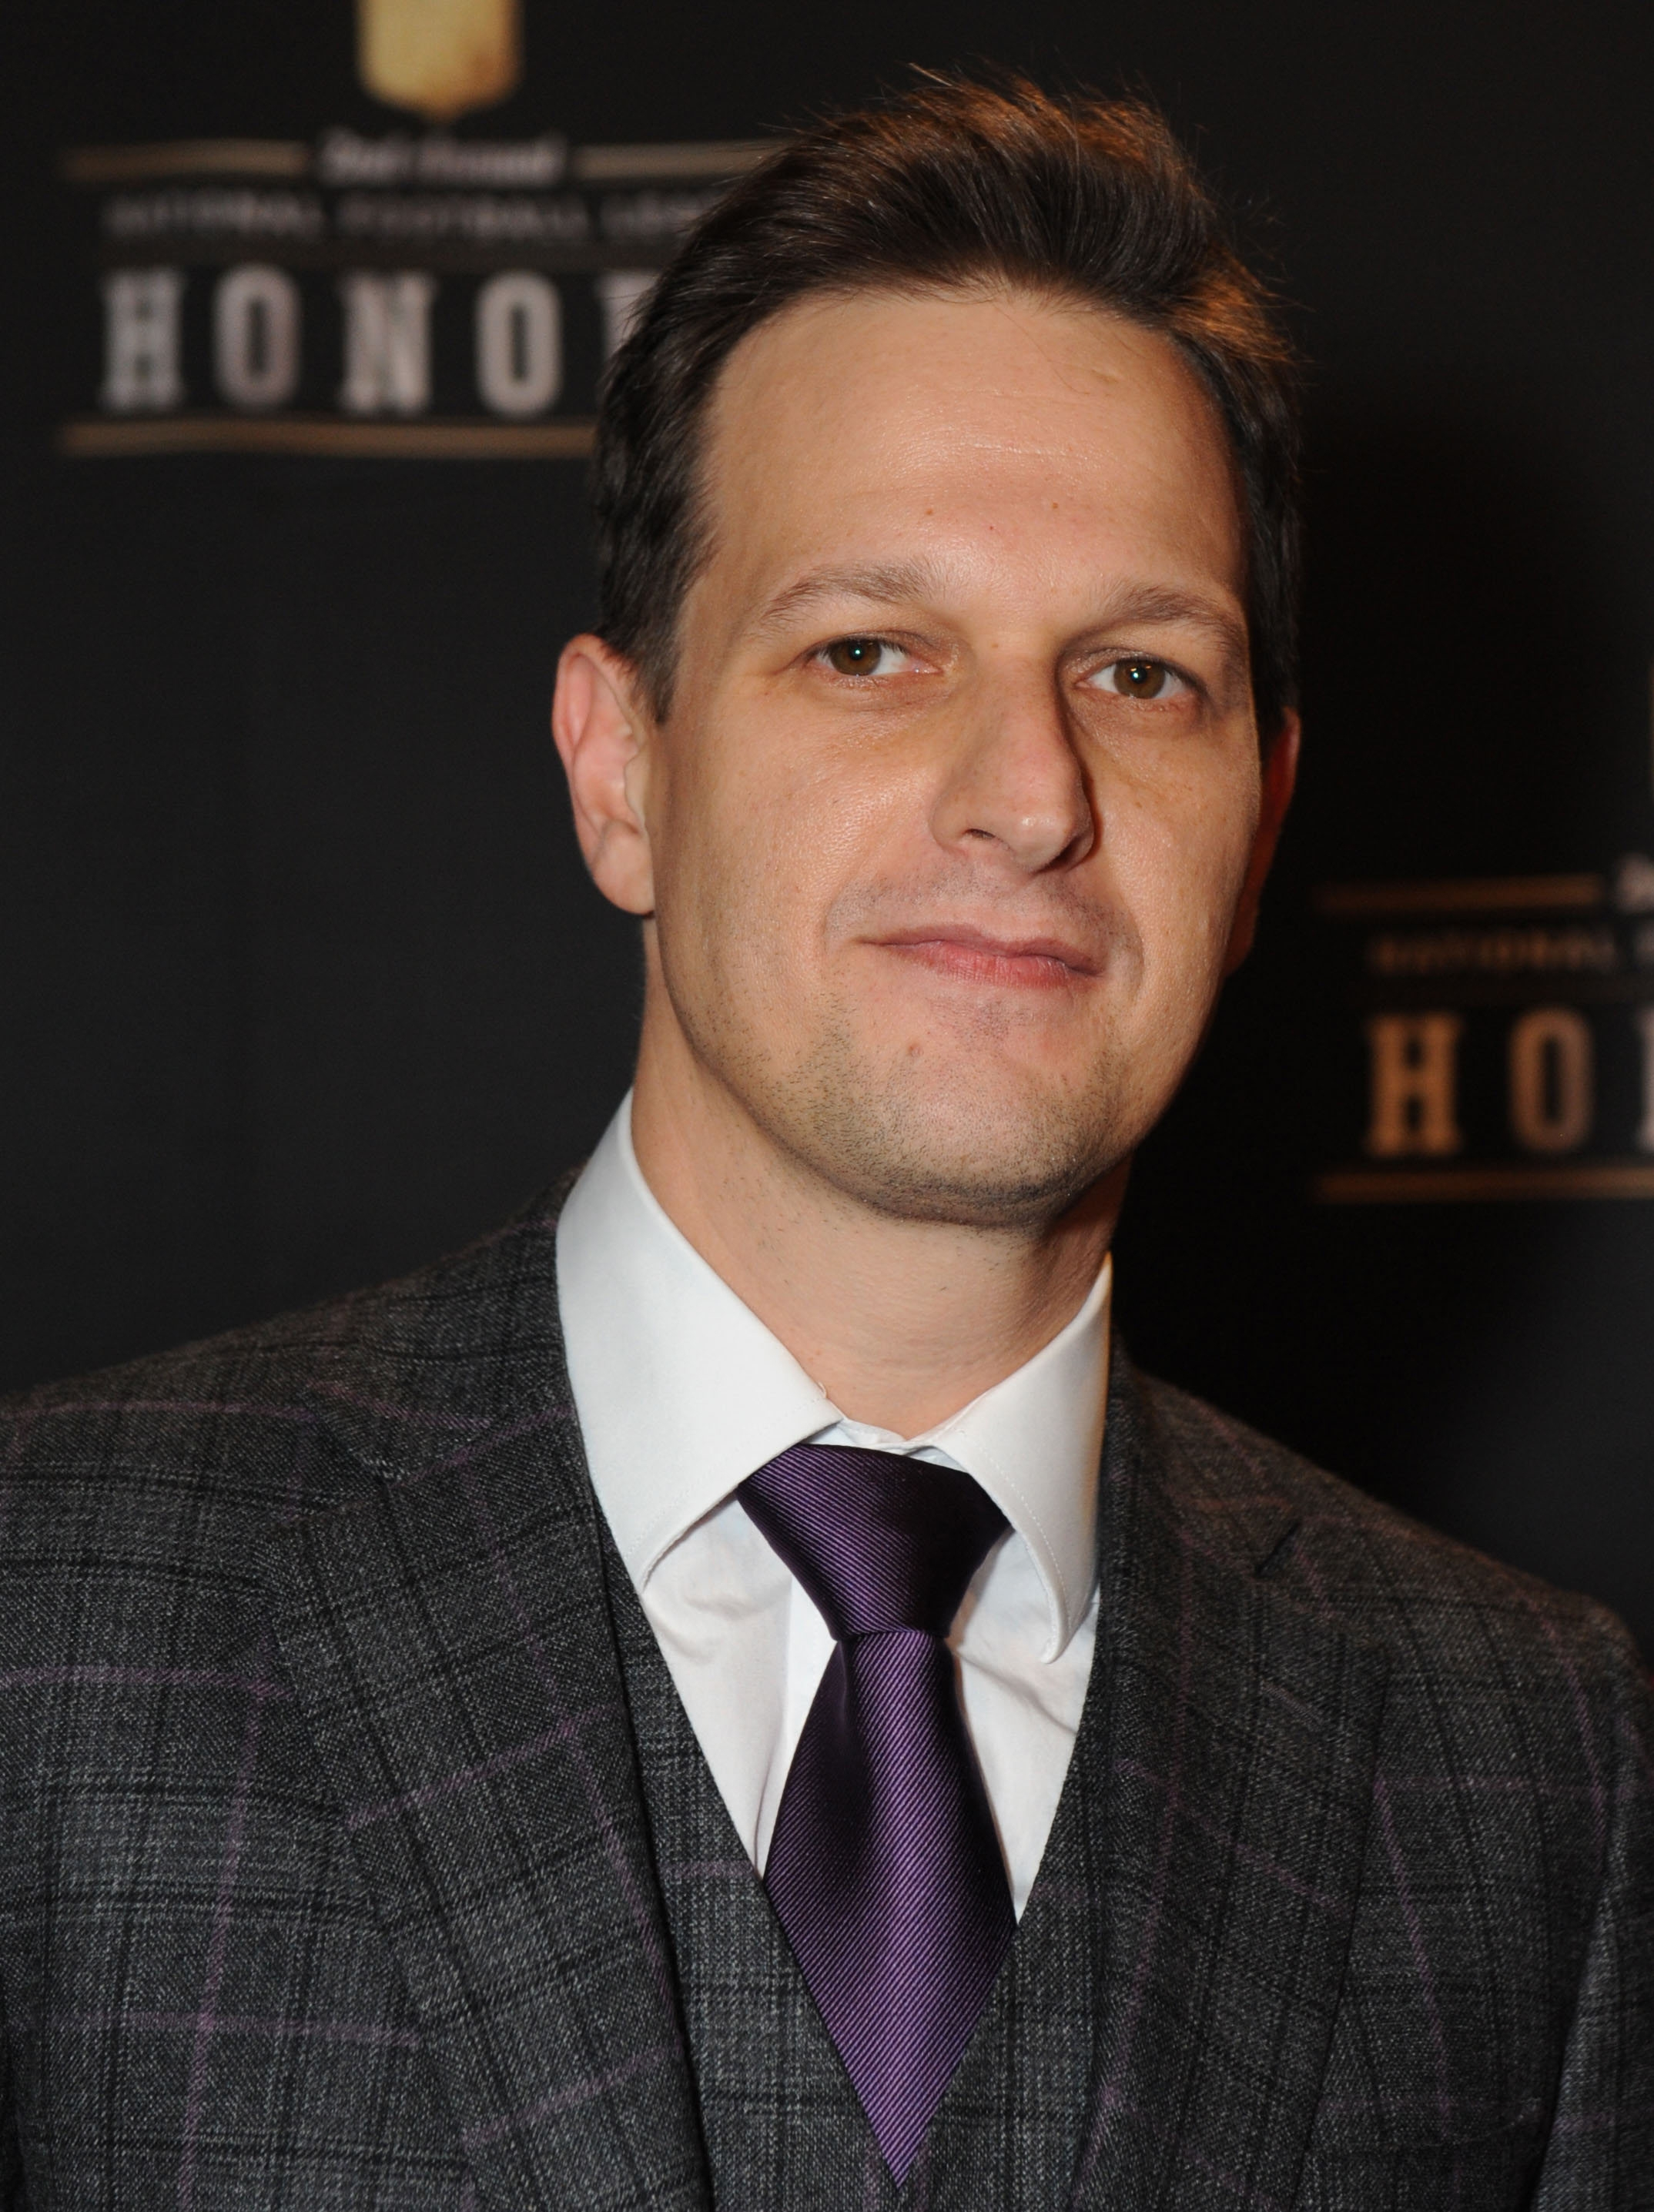 Josh Charles played dashing attorney, Will Gardner, on CBS legal drama, 'The Good Wife,' until his dramatic demise in Sunday's episode.